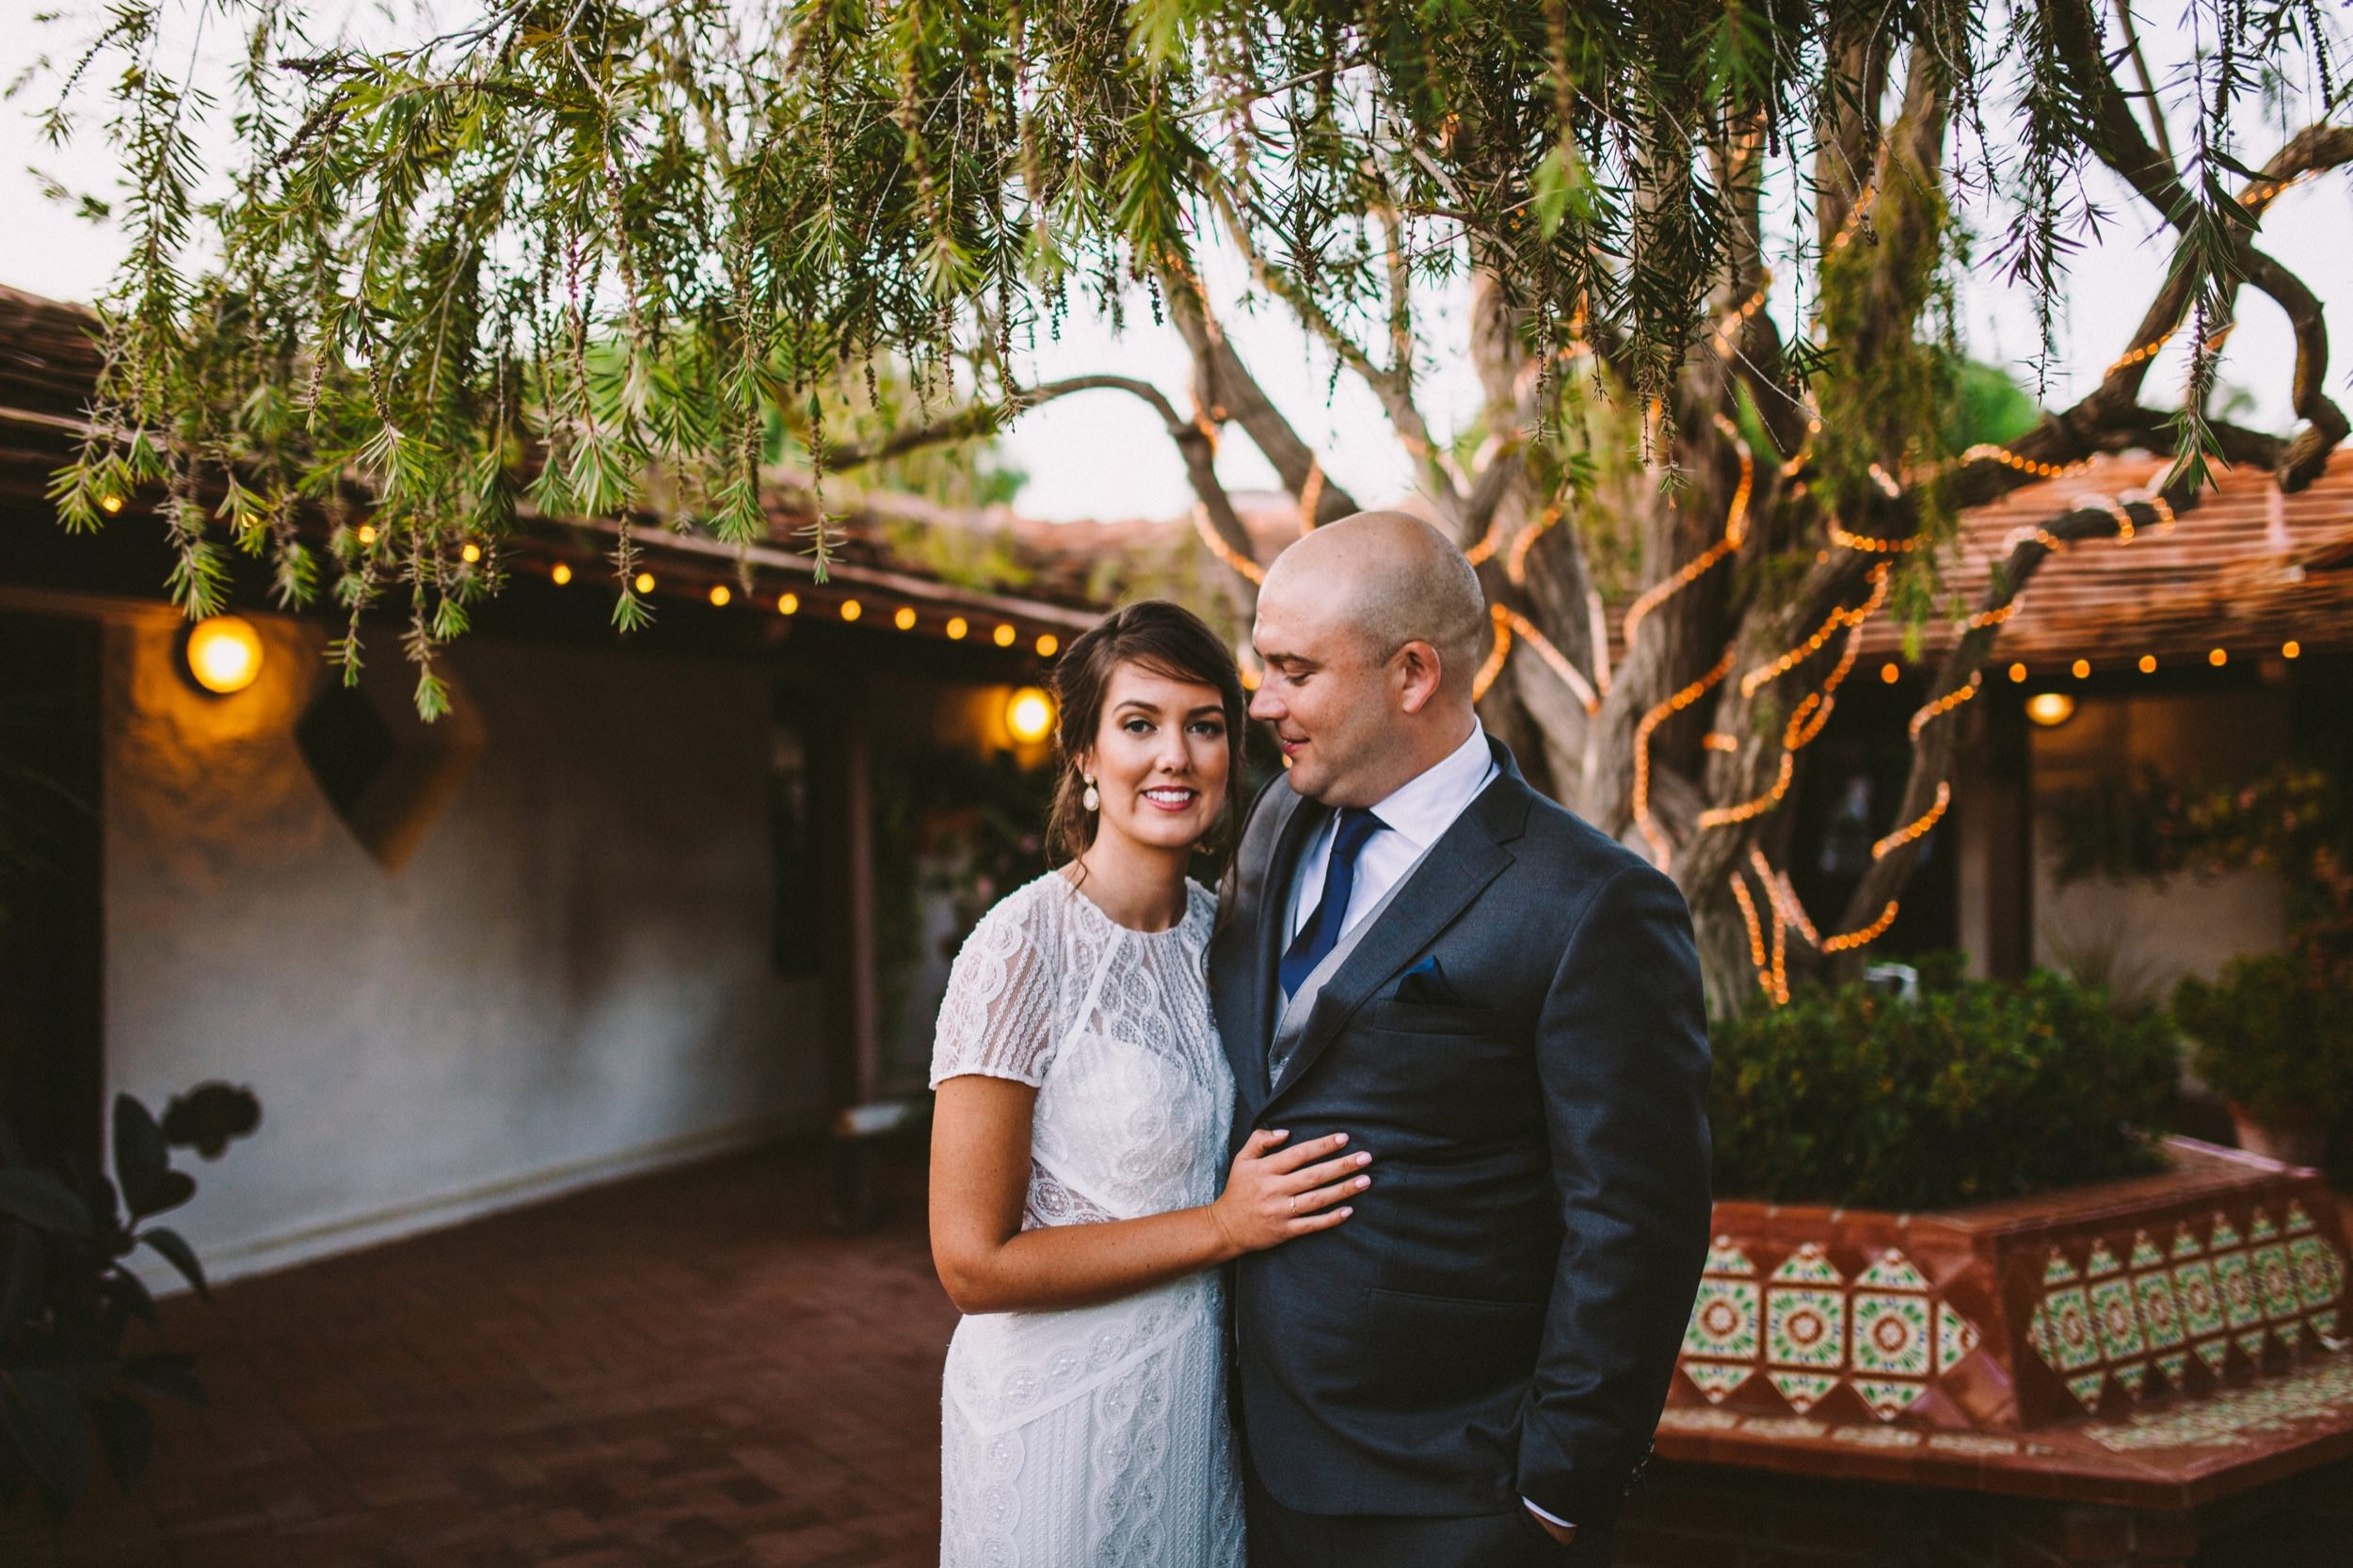 Bride & Groom In Front of the Pepper Tree at The Old Rancho in Carlsbad